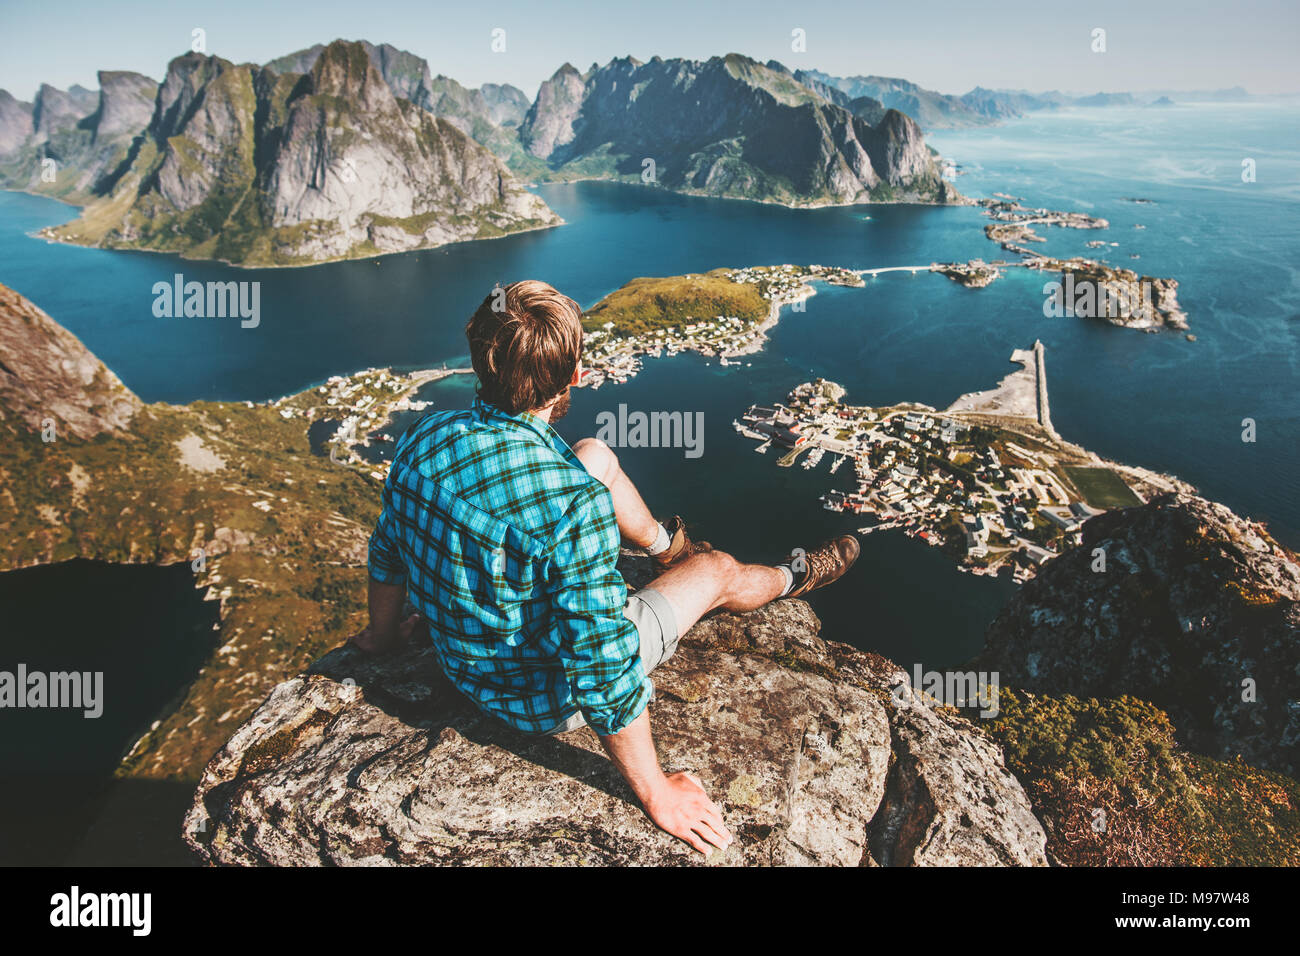 Man sitting on mountain top cliff above sea and rocks lifestyle travel adventure outdoor summer vacations tourist enjoying aerial view in Norway Lofot Stock Photo